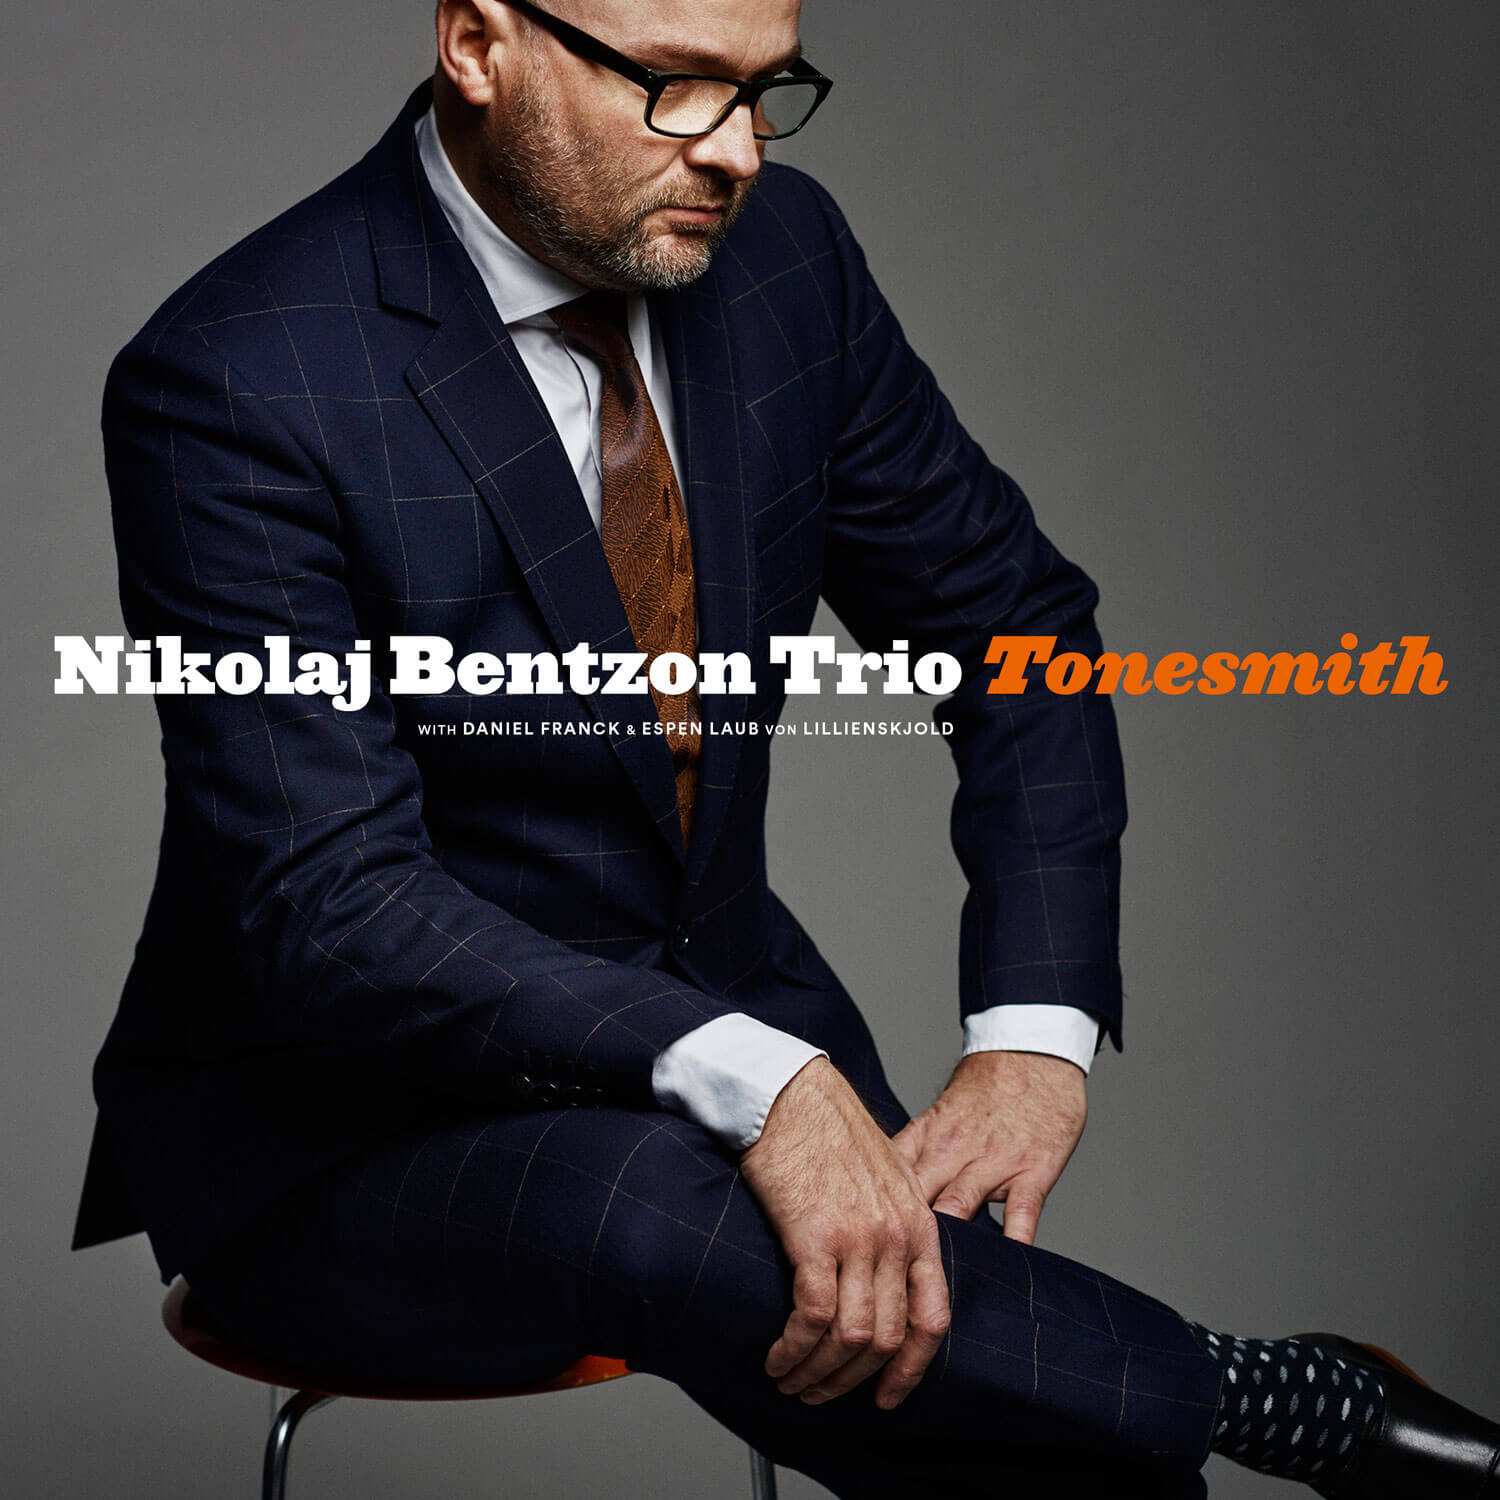 Nikolaj Bentzon Trio – Tonesmith